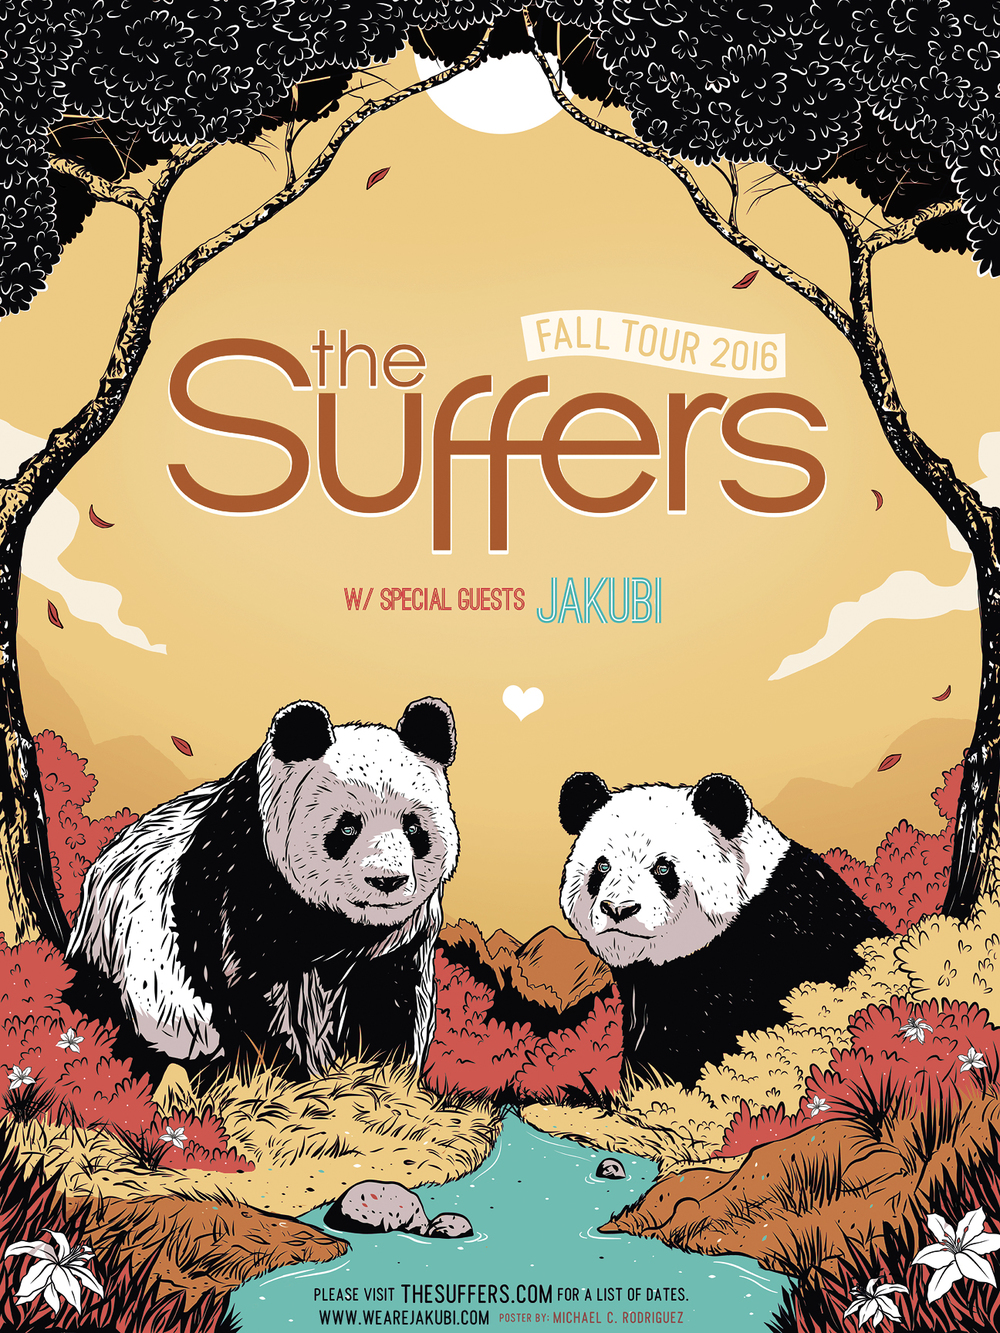 The Suffers | Fall Tour 2016 | w Jakubi | Poster.jpg